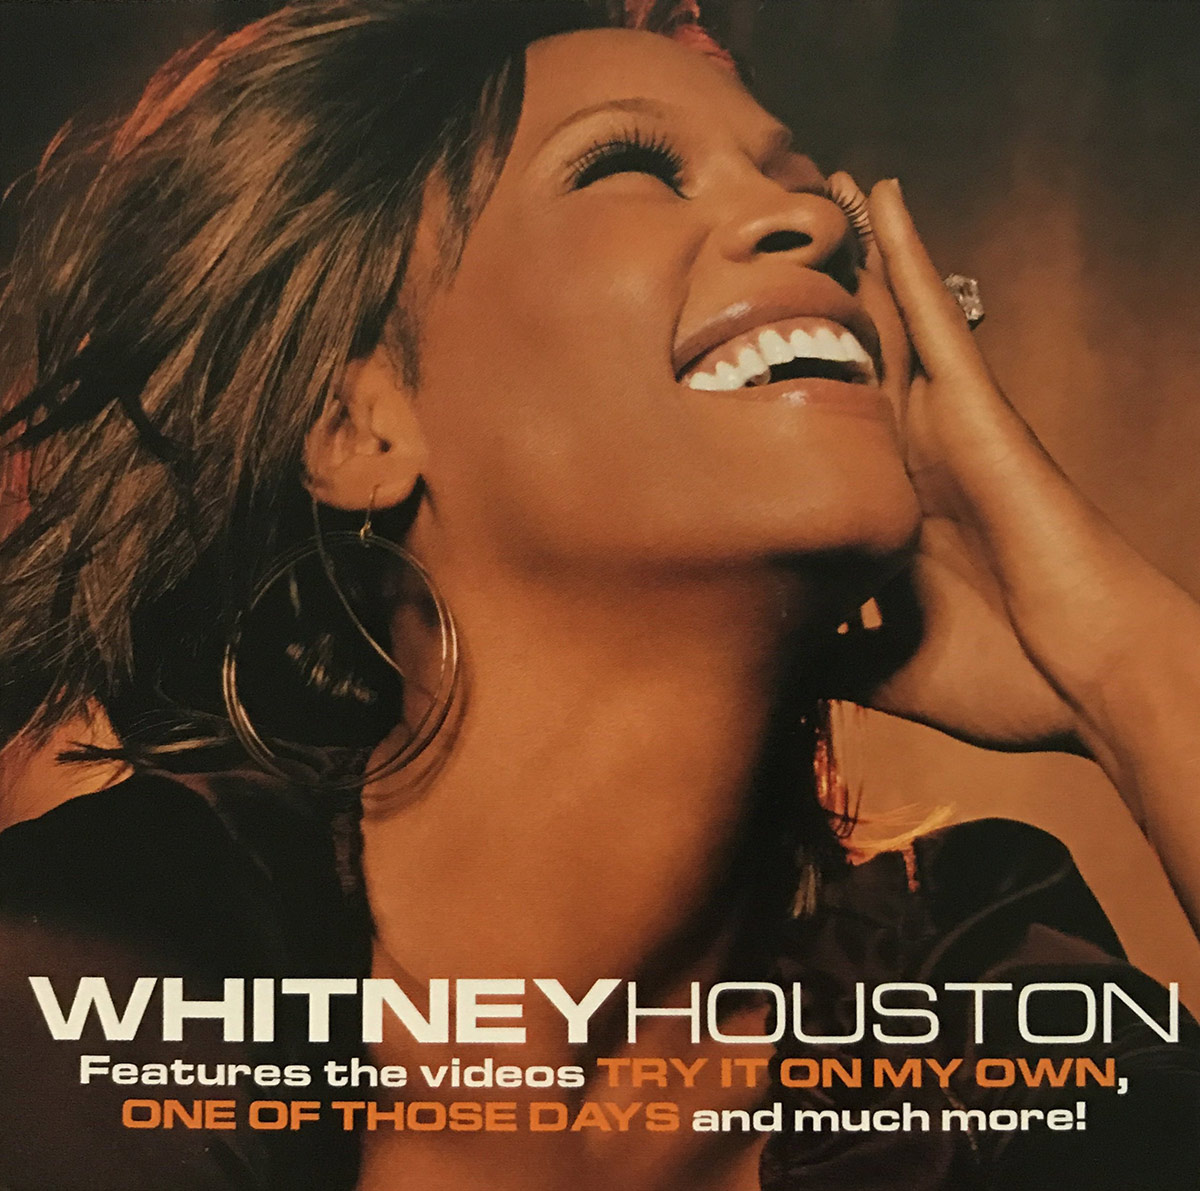 Whitney Houston - Try It On My Own DVD single front cover